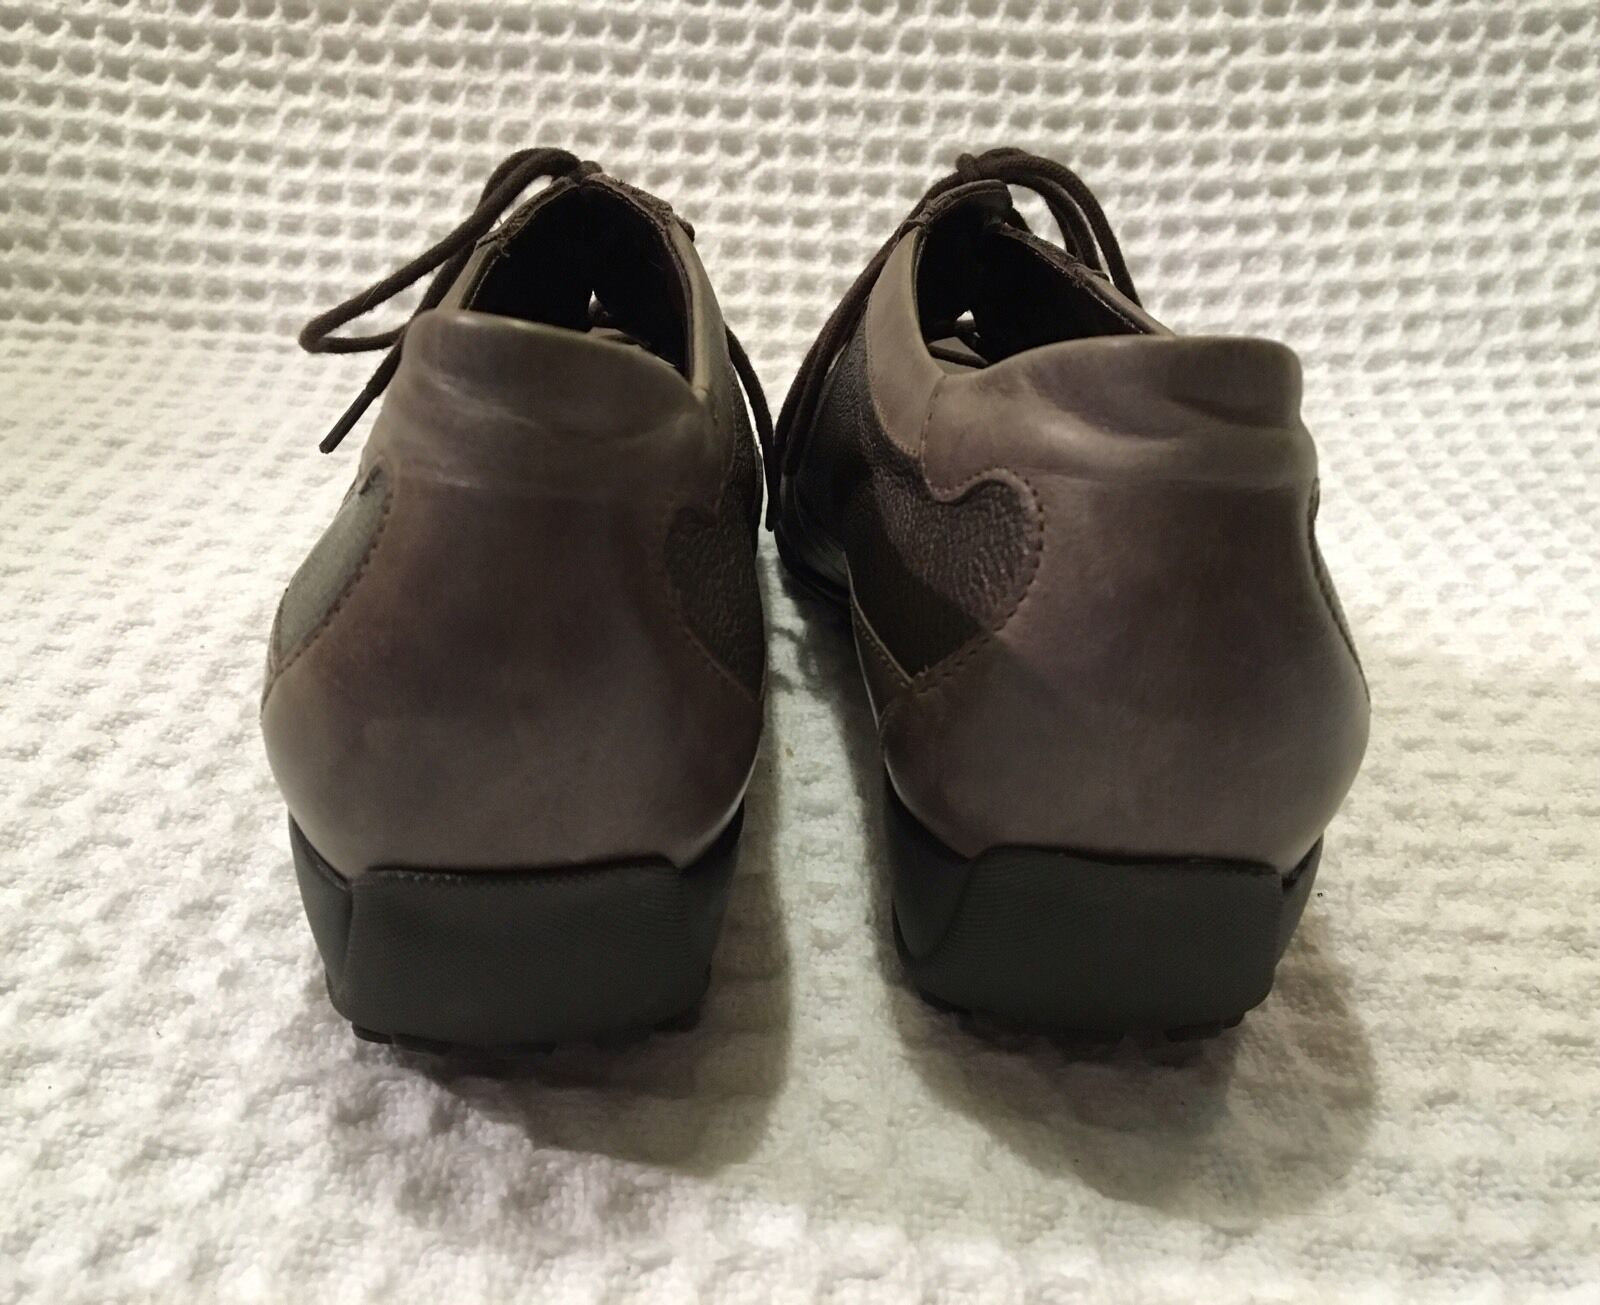 MEPHISTO Air-Relax  349 Leather Leather Leather Lace-up Oxfords shoes - women's 9.5 85d872